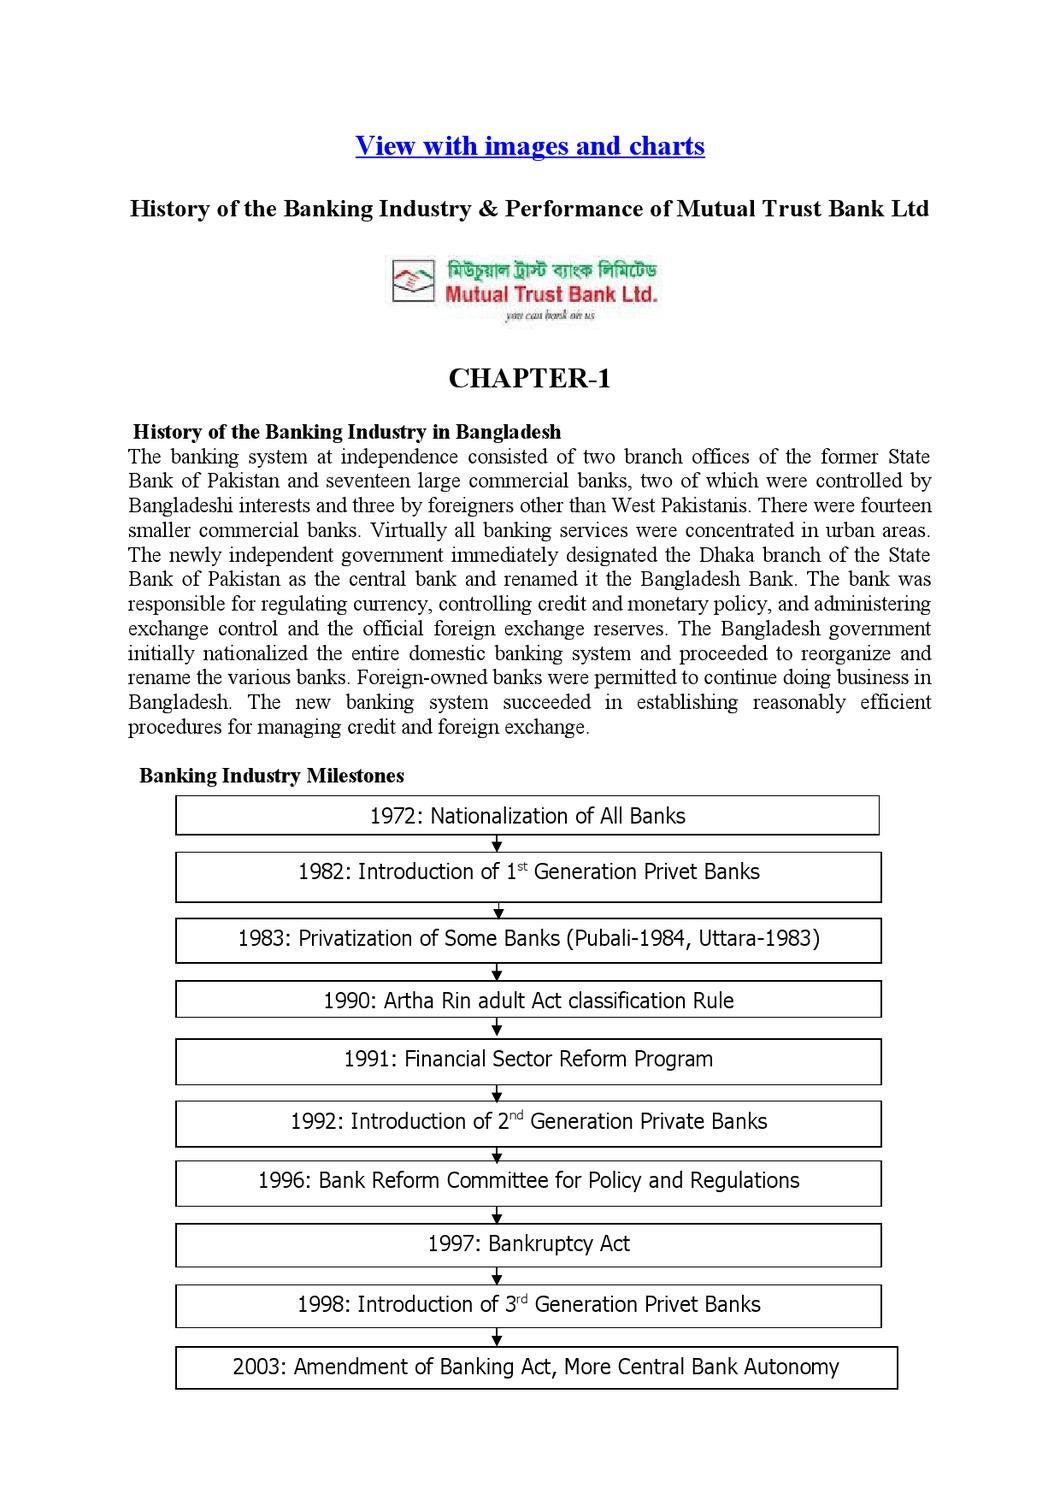 History of the Banking Industry & Performance of Mutual Trust Bank ...